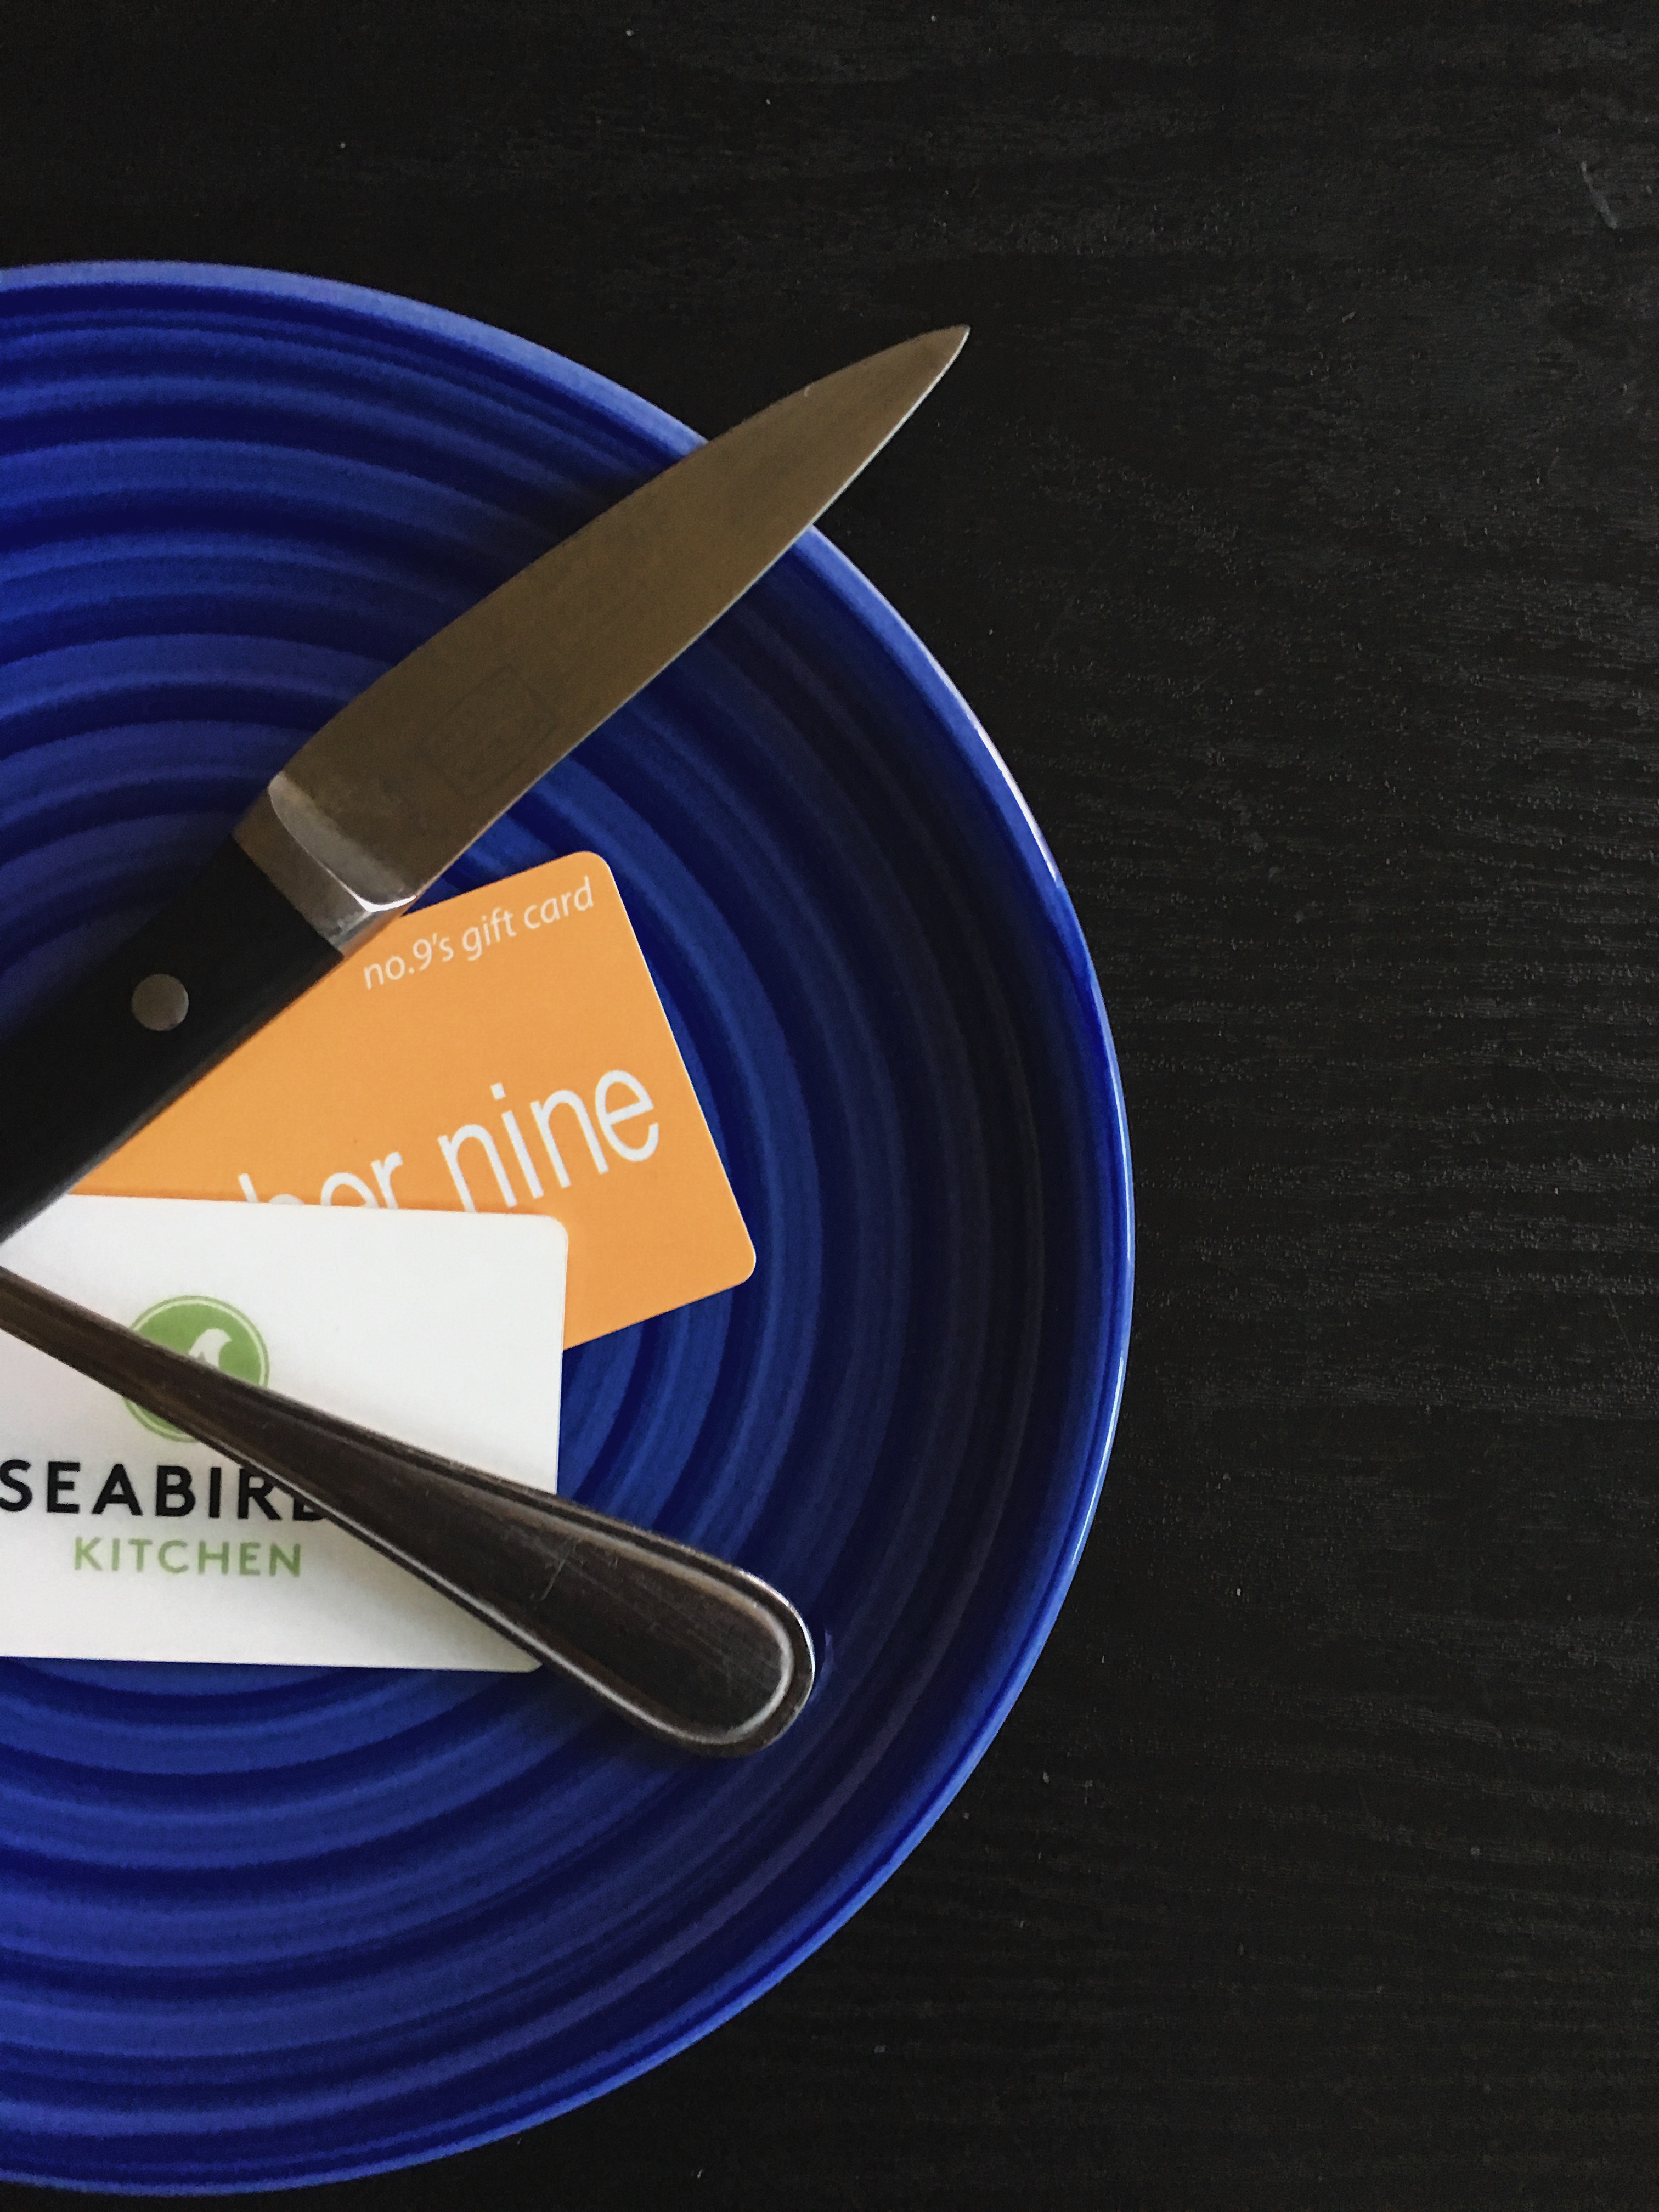 gift cards-gifts for him-number nine-seabird